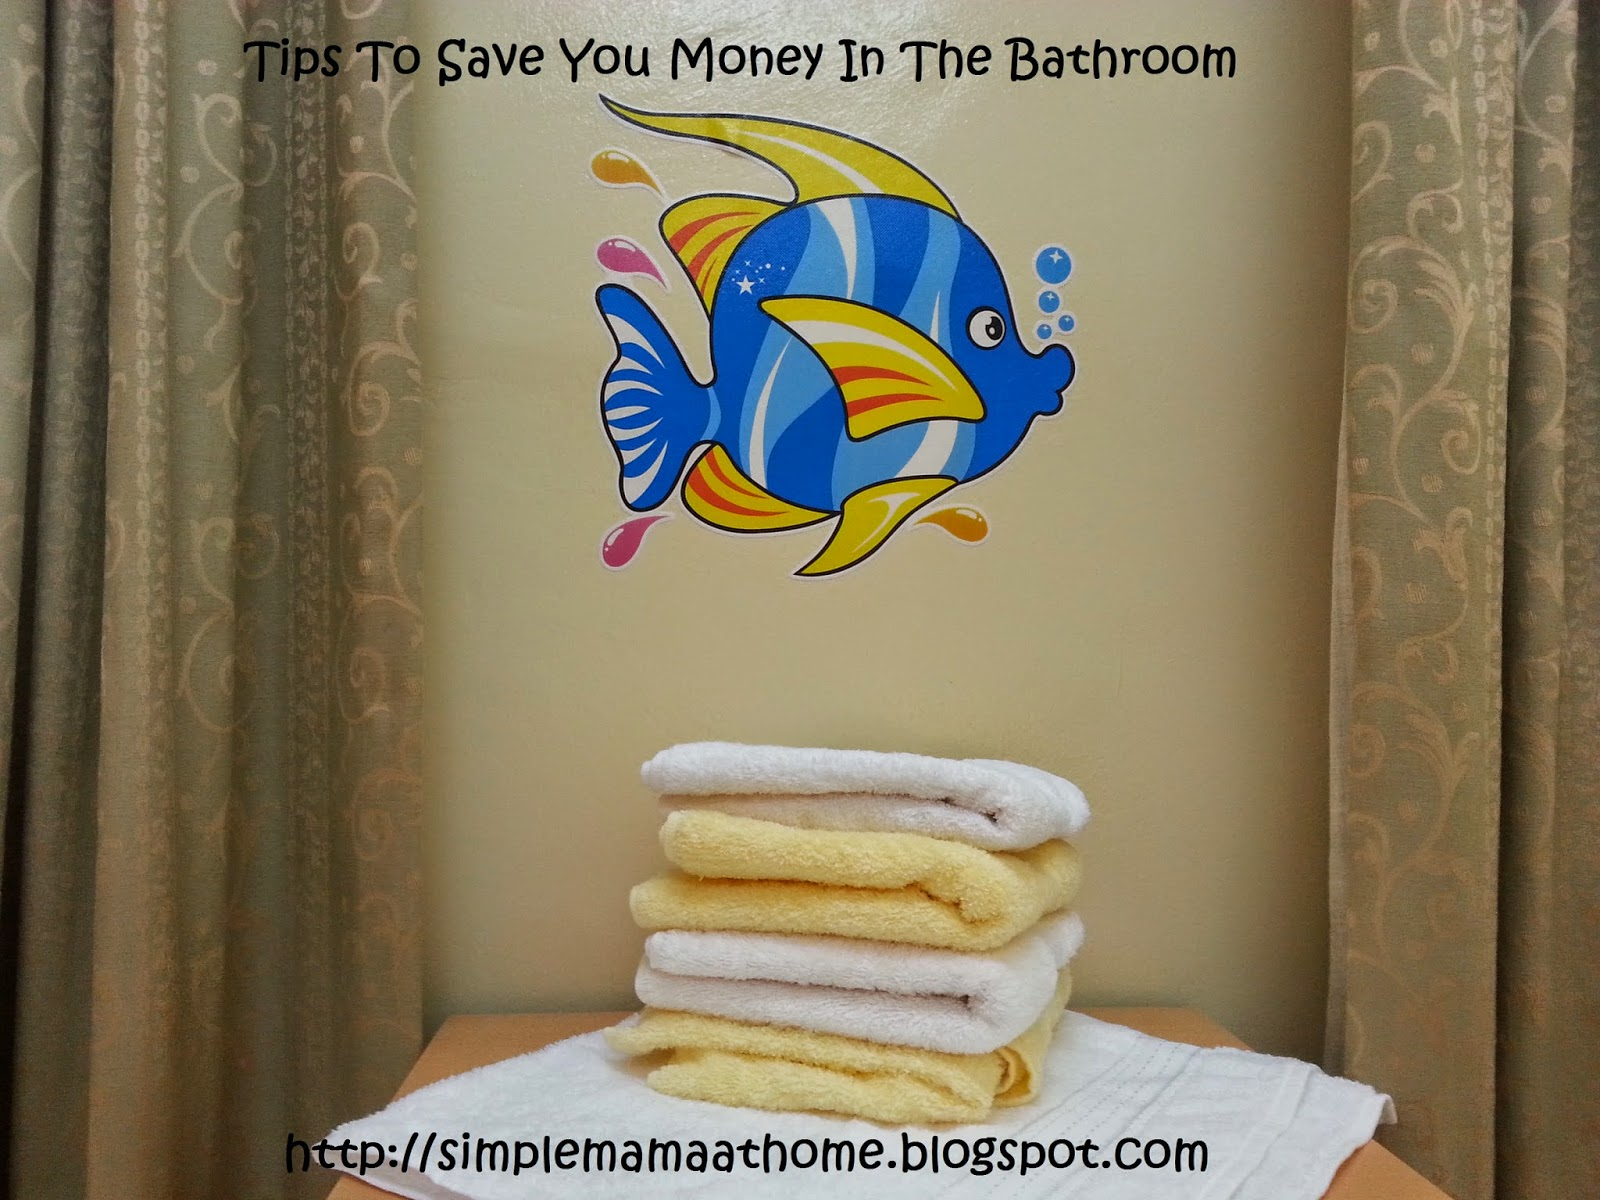 Tips To Save You Money In The Bathroom